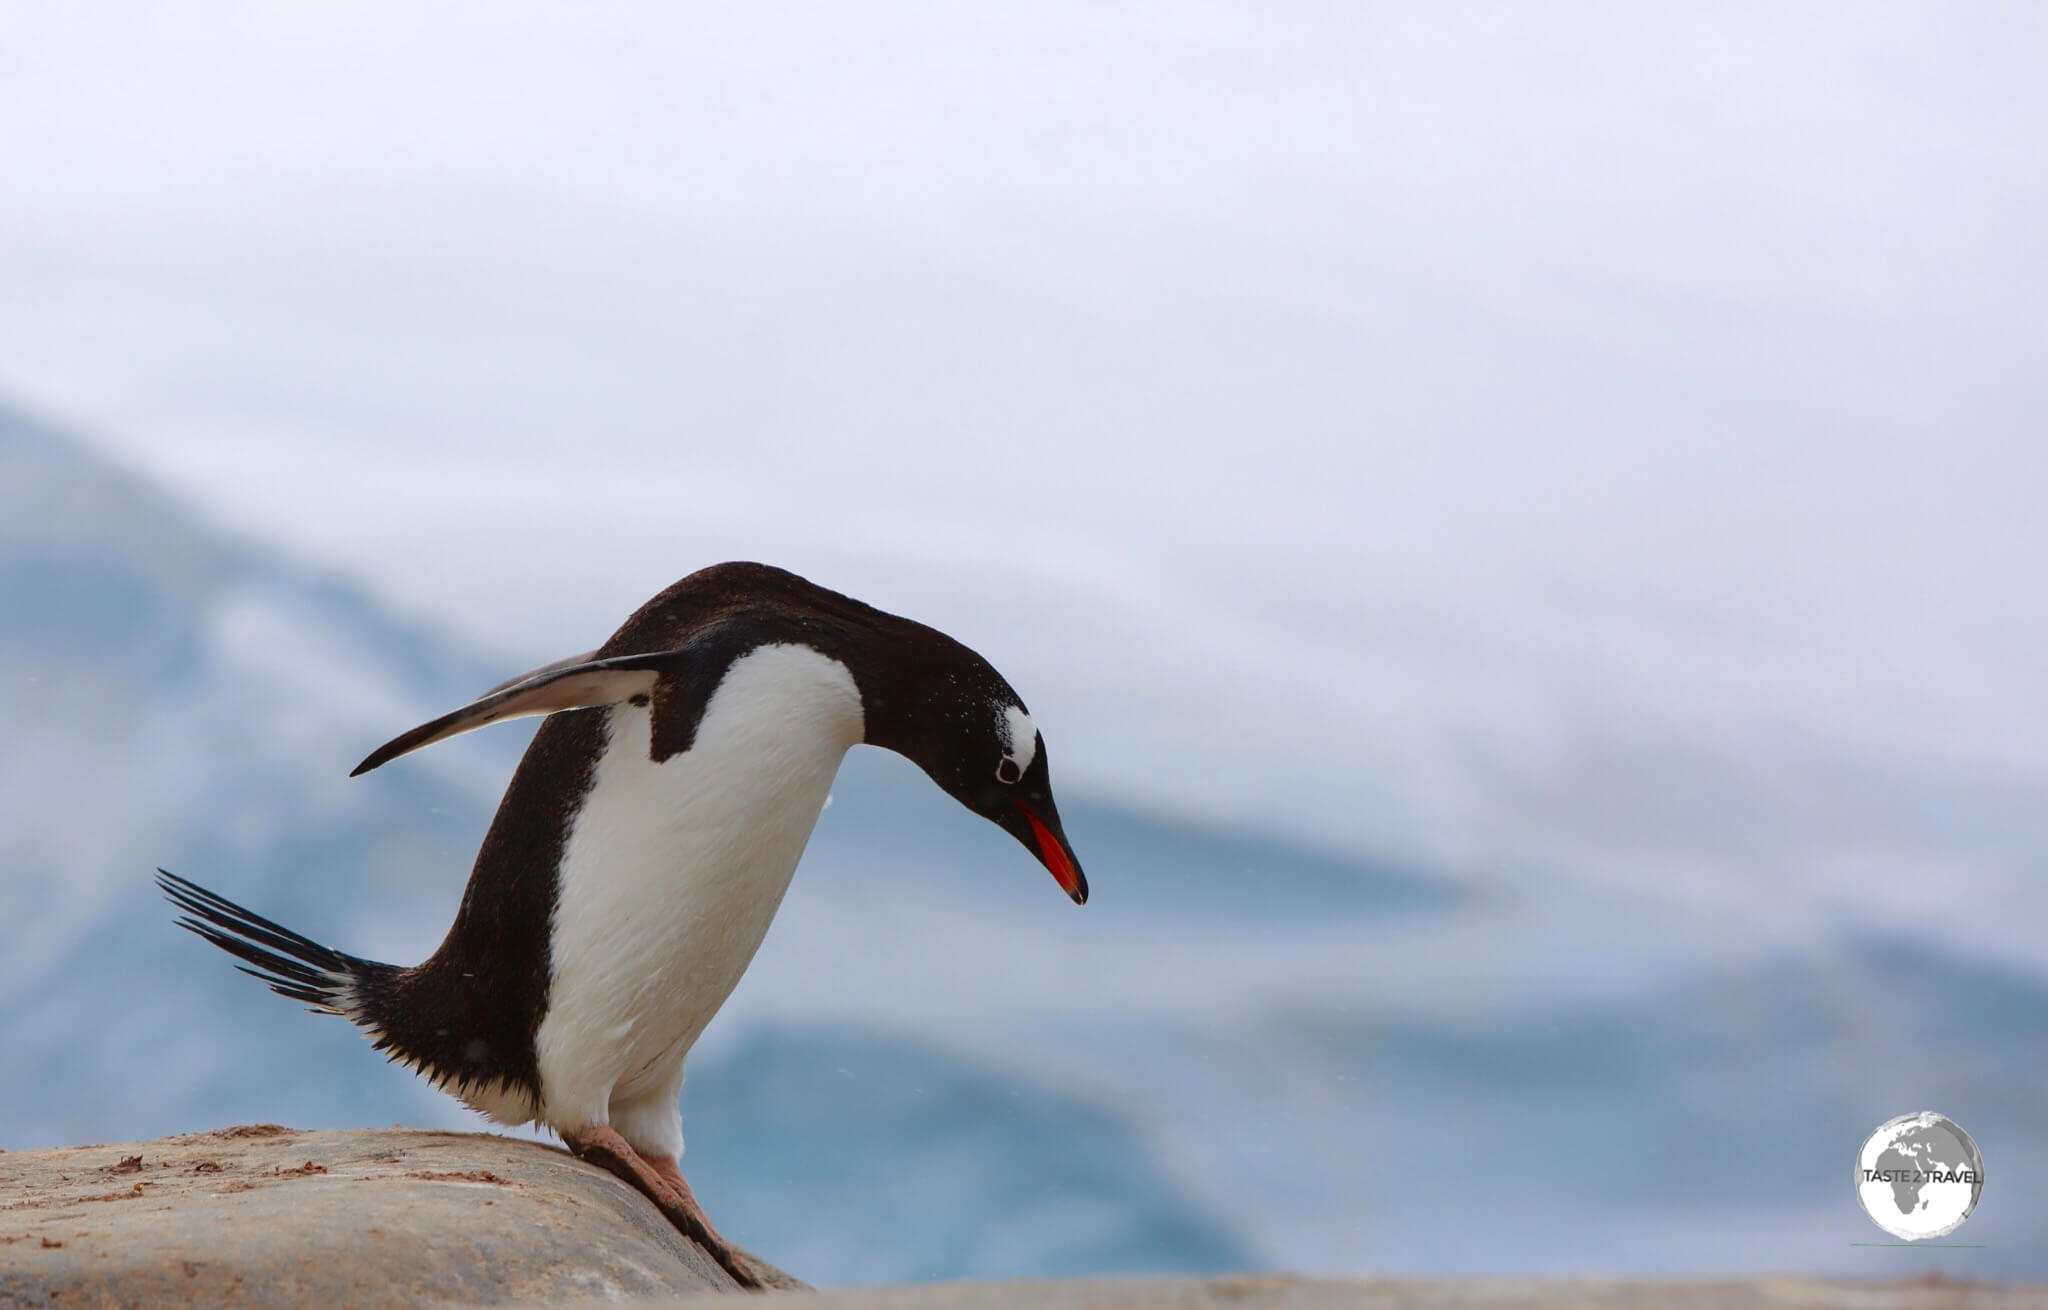 Closely related to the Chinstrap and Adélie - the Gentoo is the 3rd-largest species of penguin after the Emperor and King.